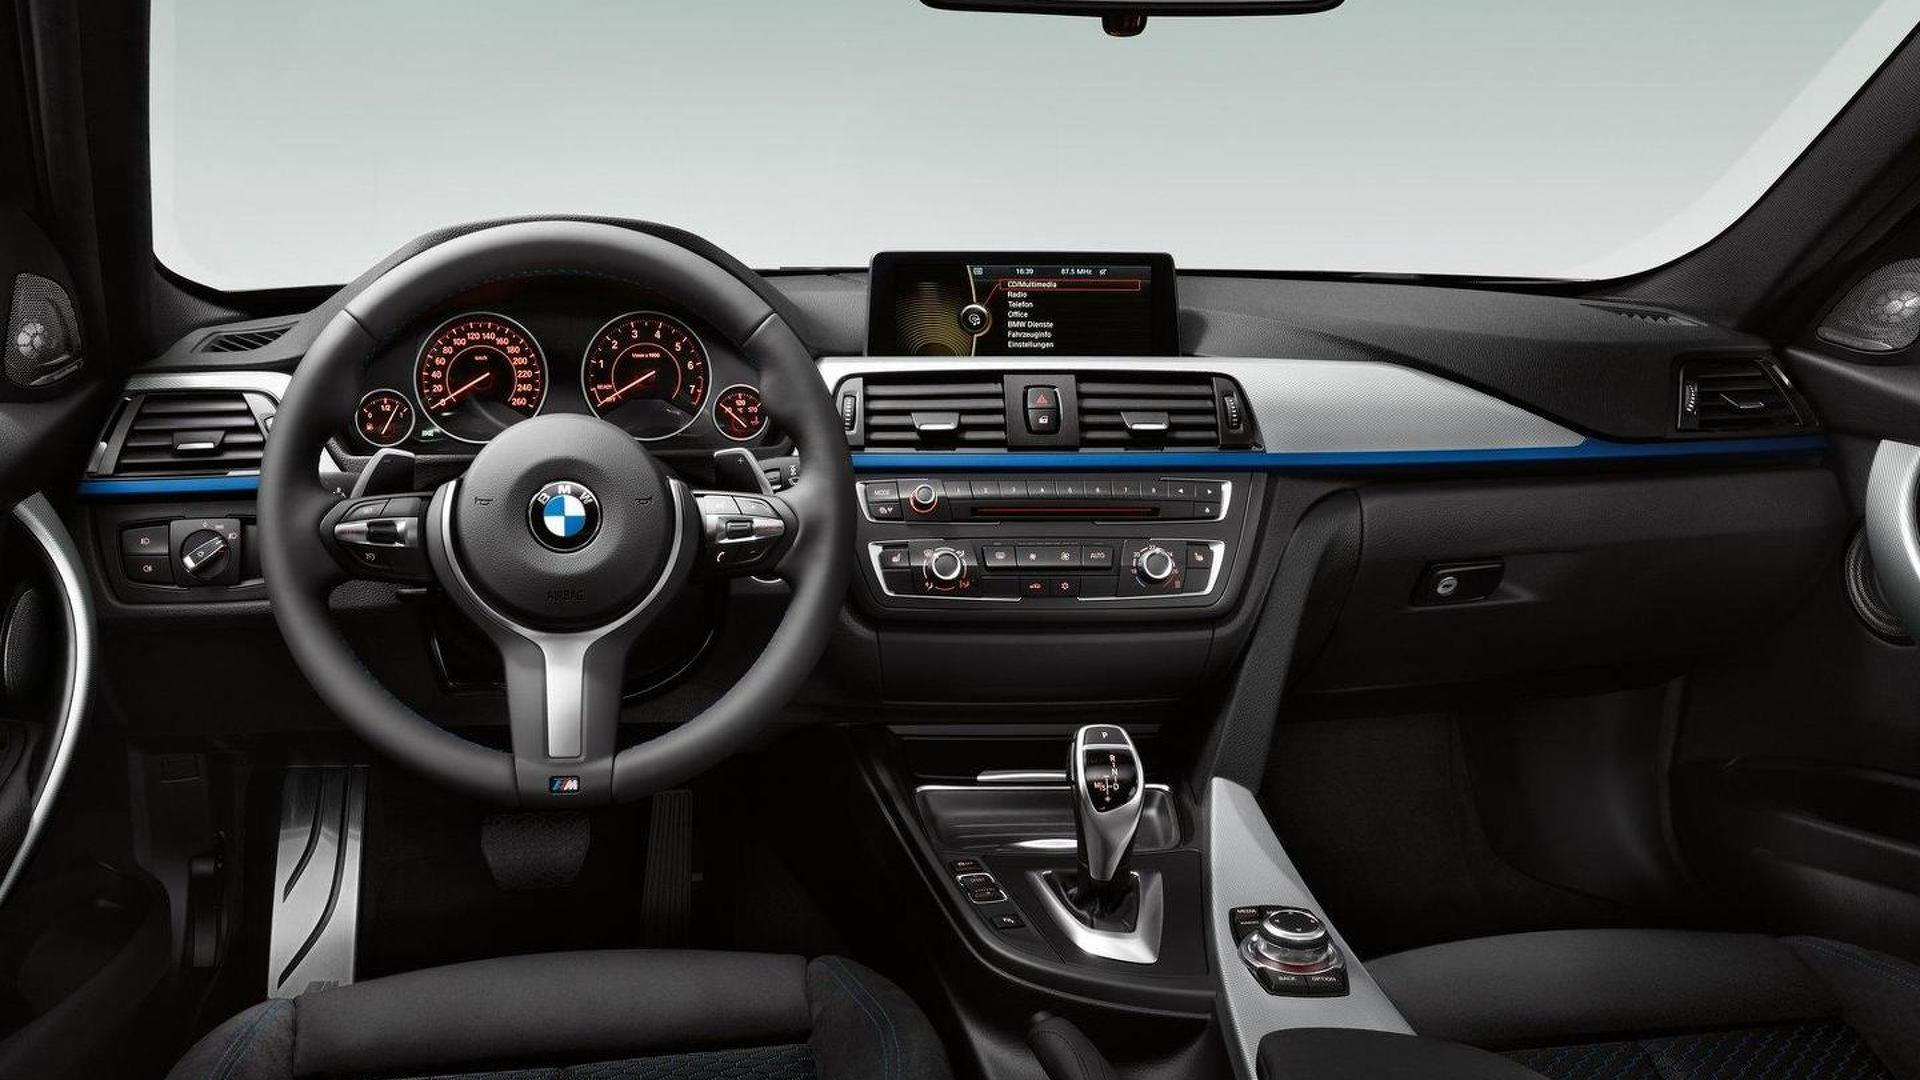 2012 Bmw 3 Series M Sport Package Interior 335i 14 10 2011 1079551